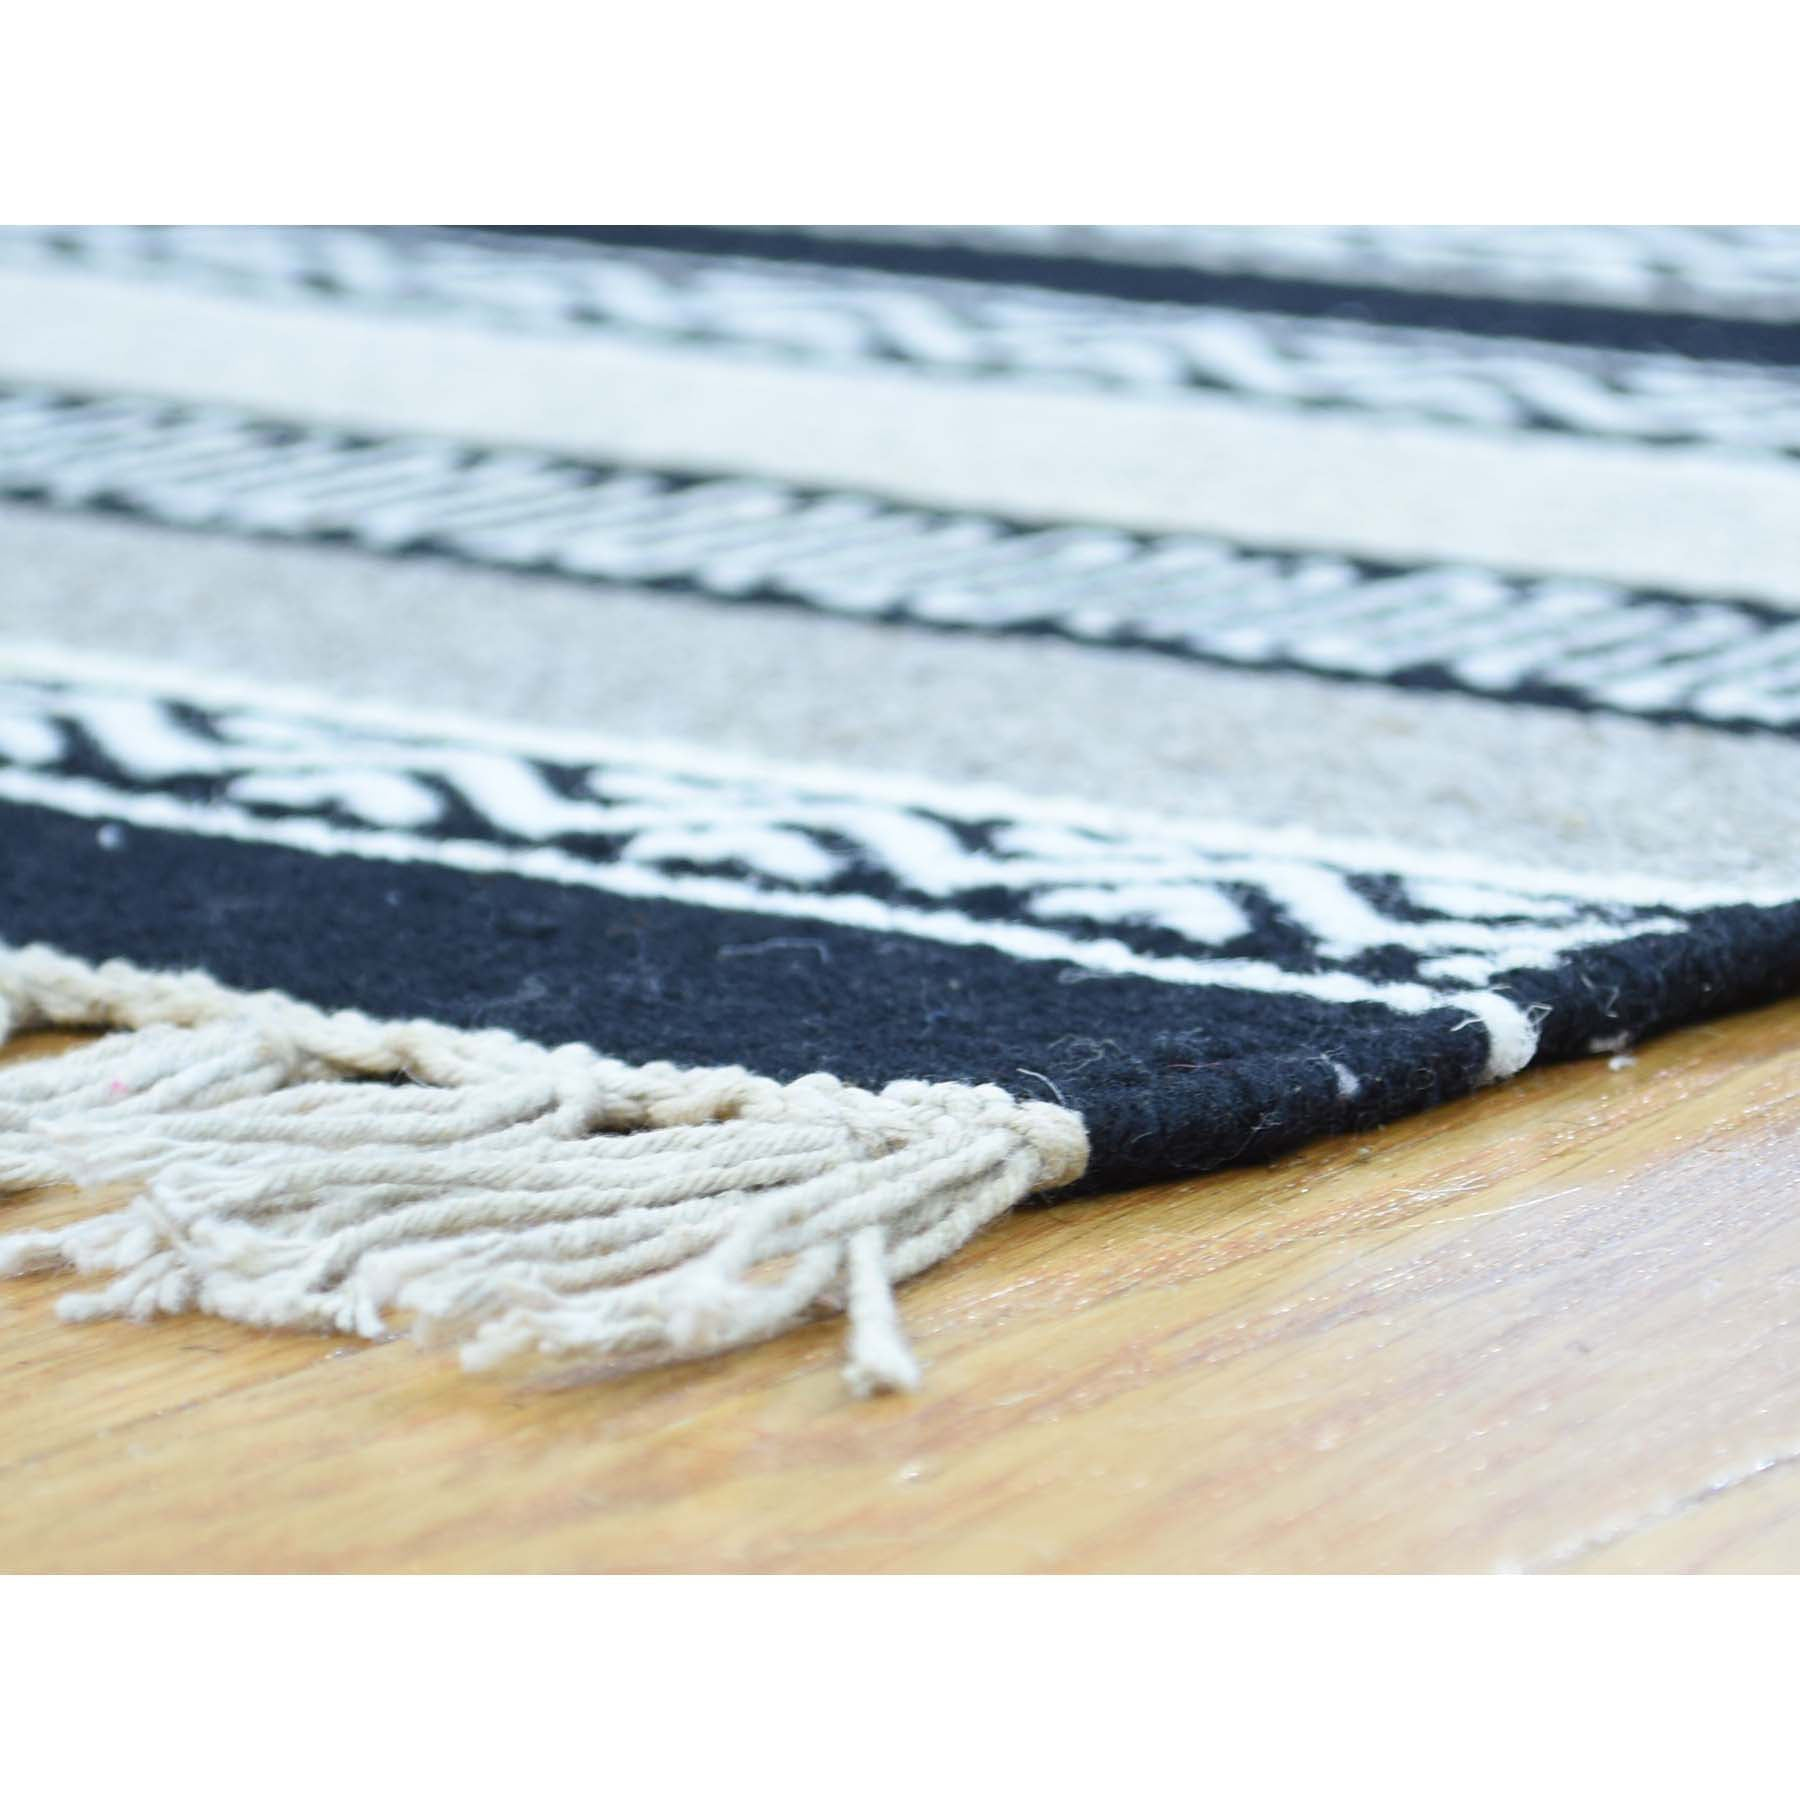 "Handmade Flat Weave Rectangle Rug > Design# SH31848 > Size: 4'-0"" x 6'-0"" [ONLINE ONLY]"